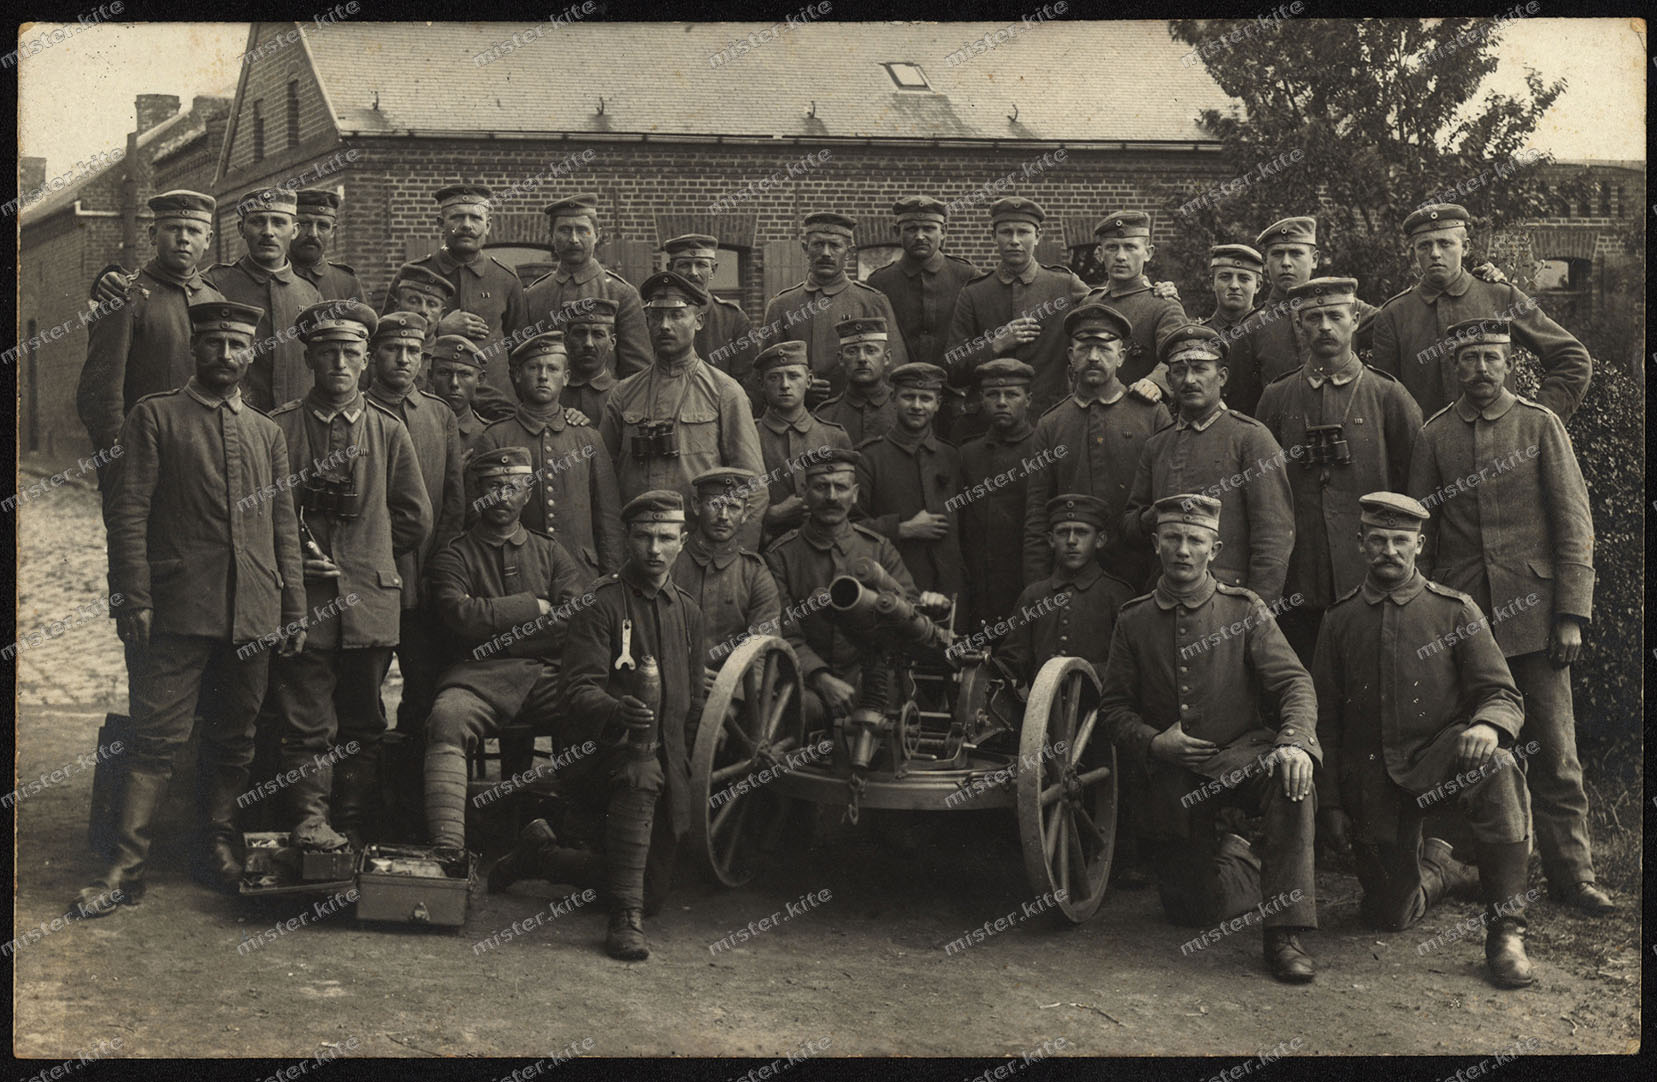 Foto-AK-Res.-Inf-Regt. 247-Minenwerfer-Abteilung-Feldpost-Ancre-1918-1WK-